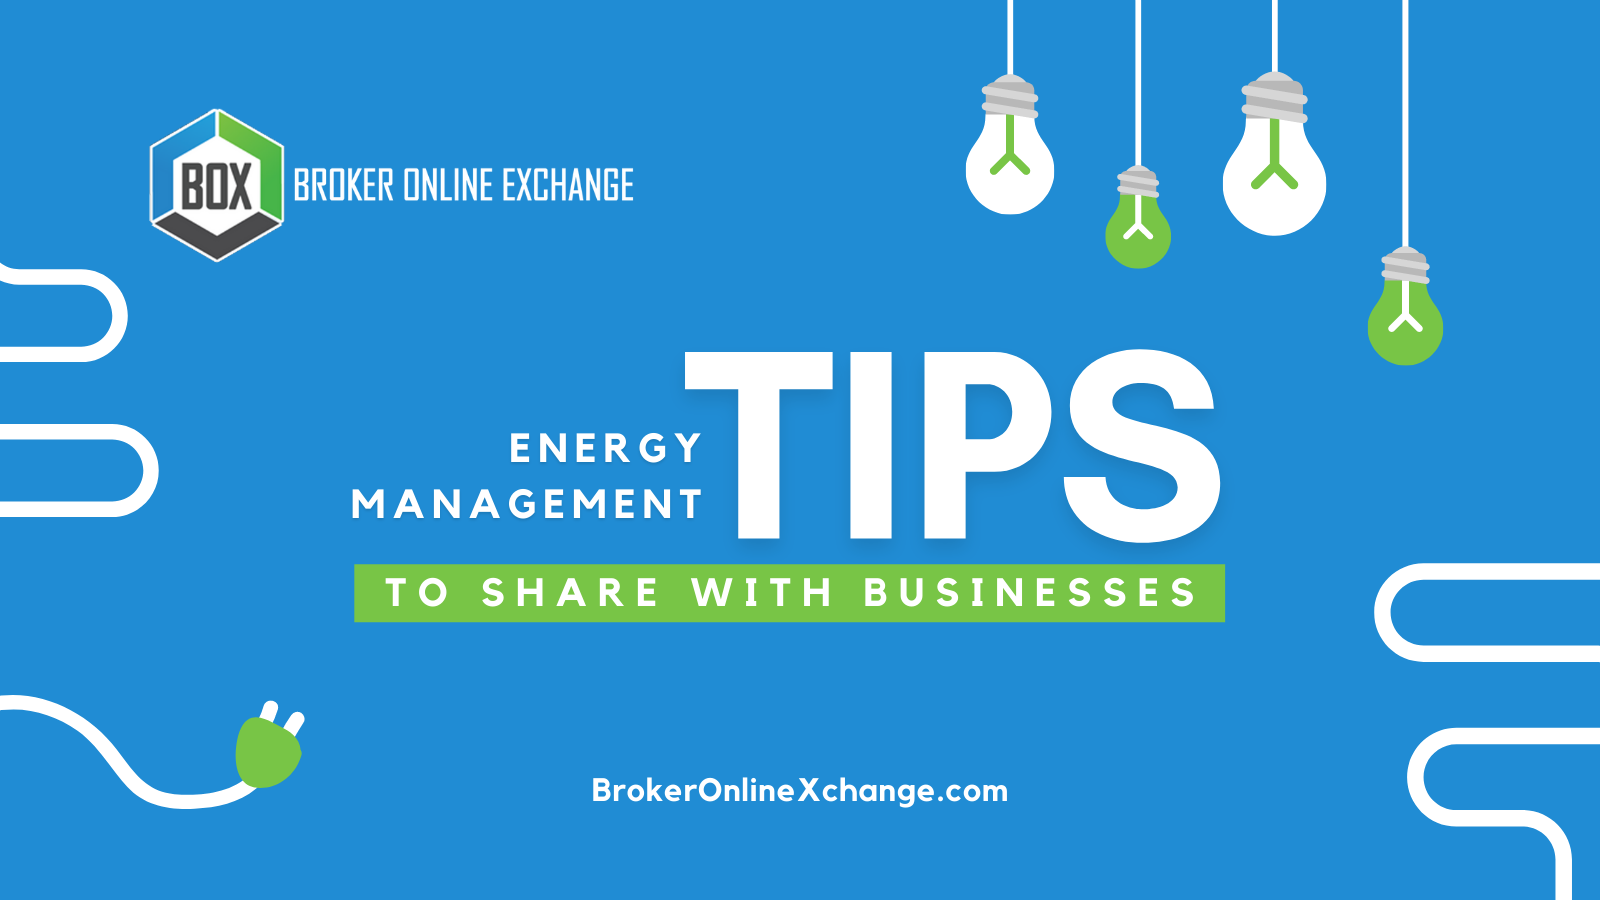 Energy Management Tips To Share With Businesses